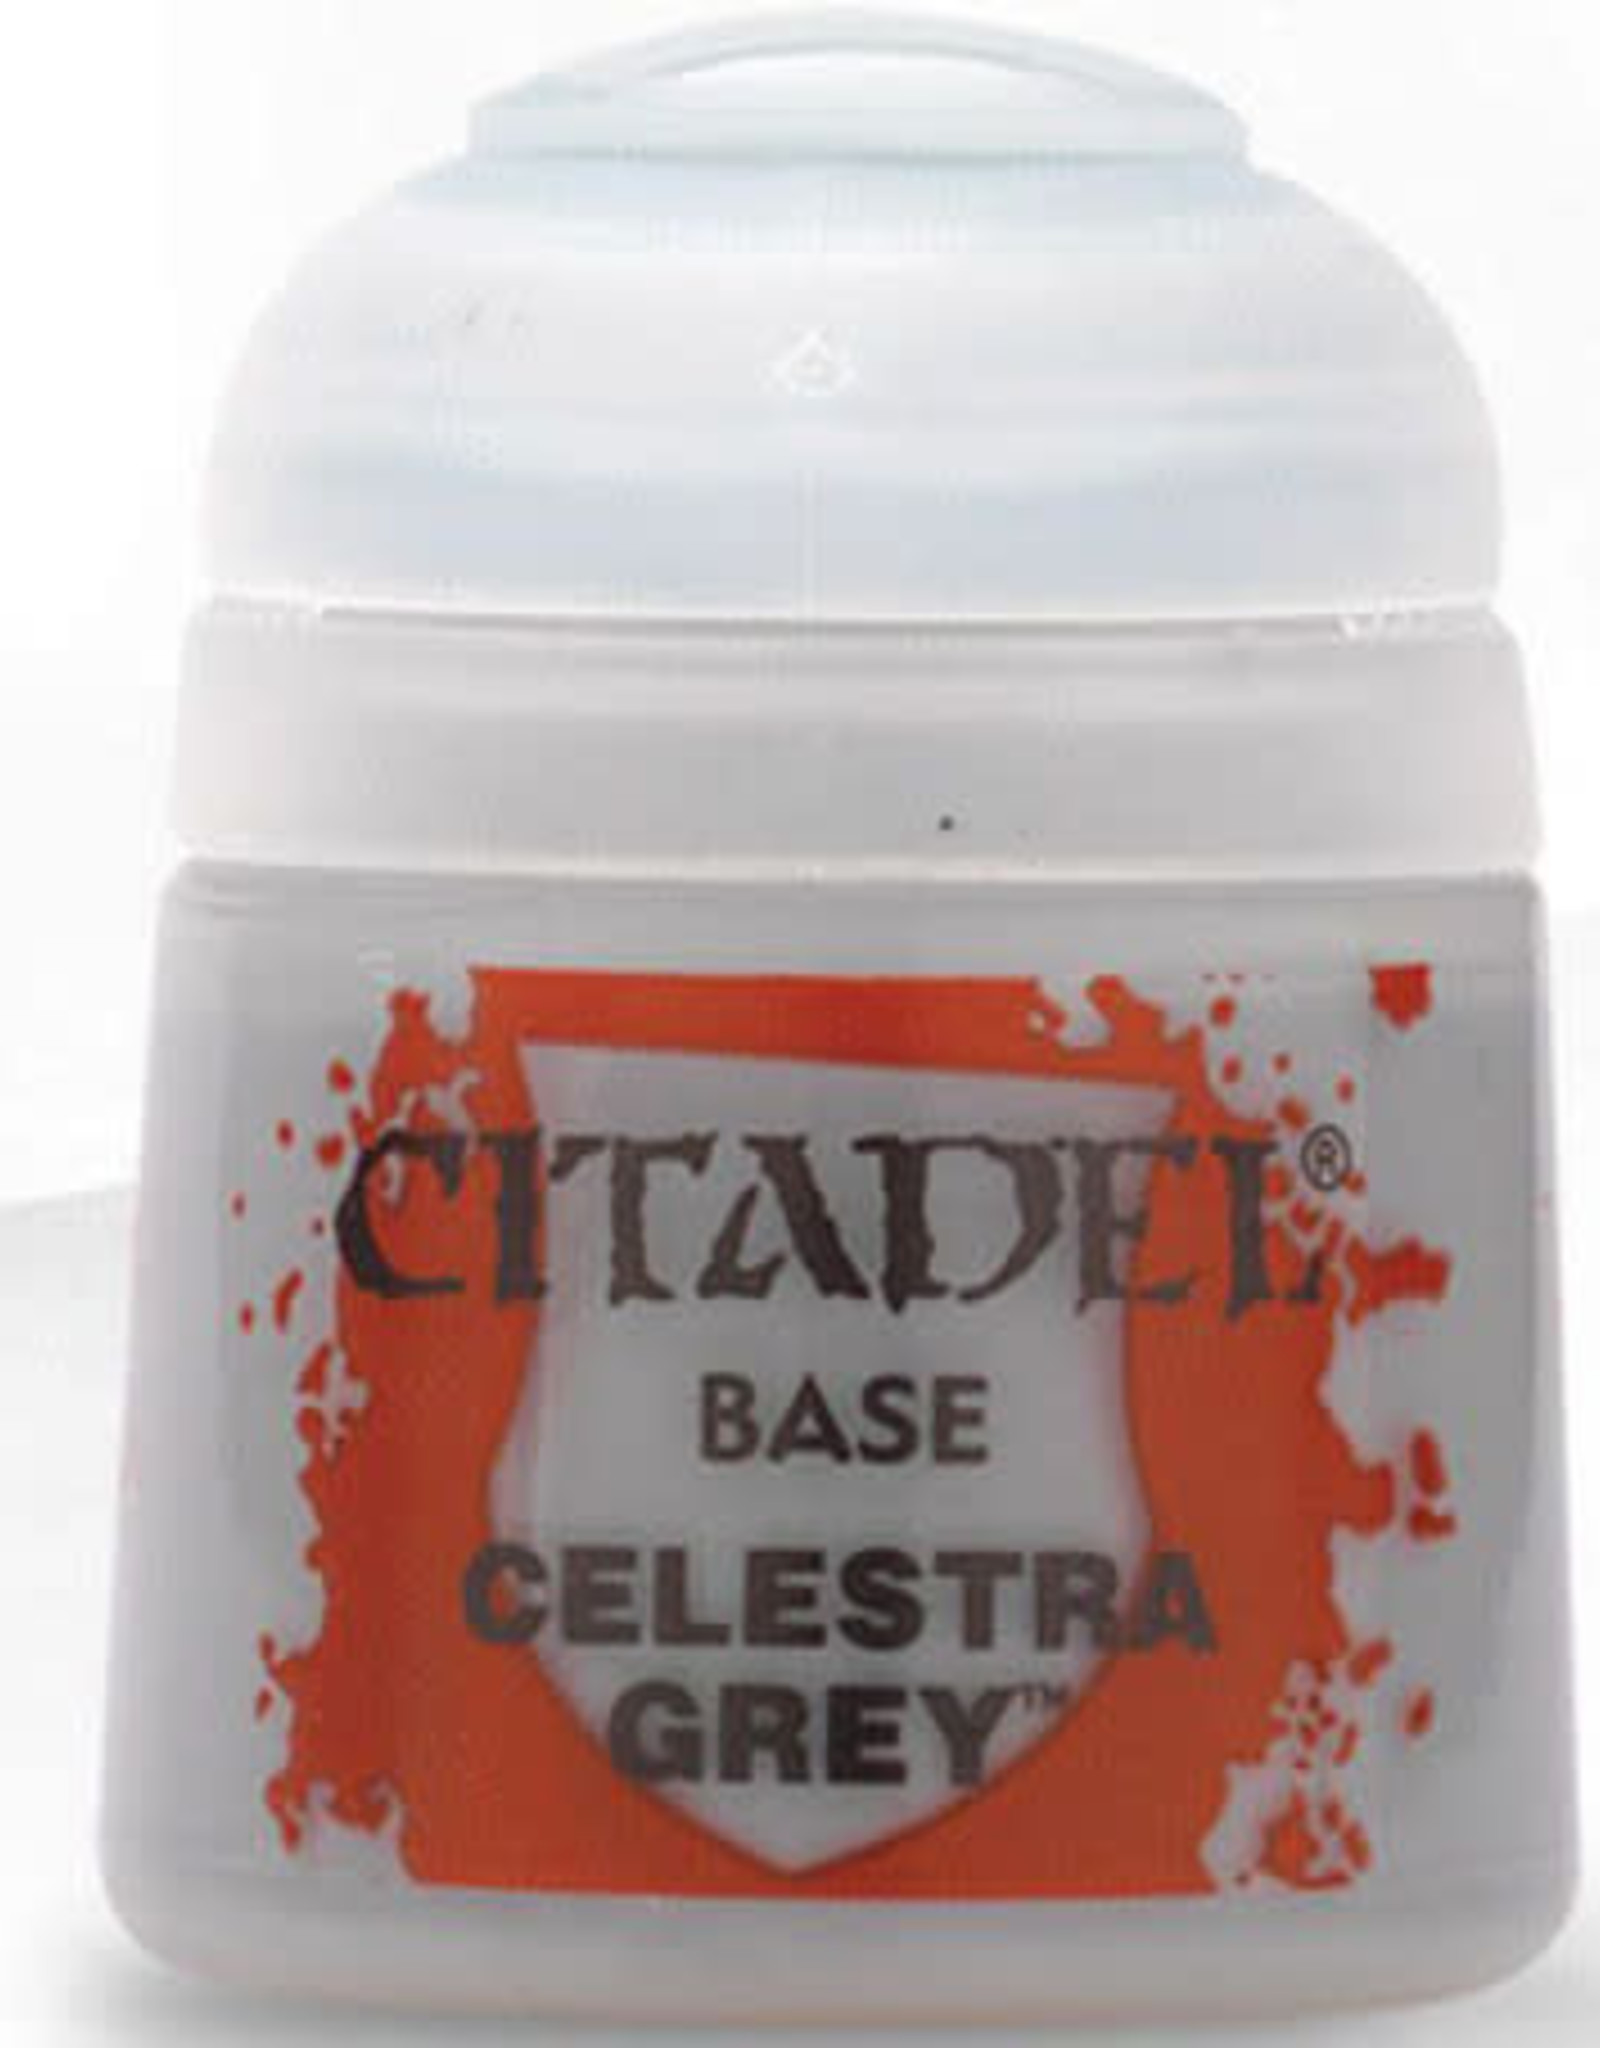 Games Workshop Citadel Paint: Base - Celestra Grey